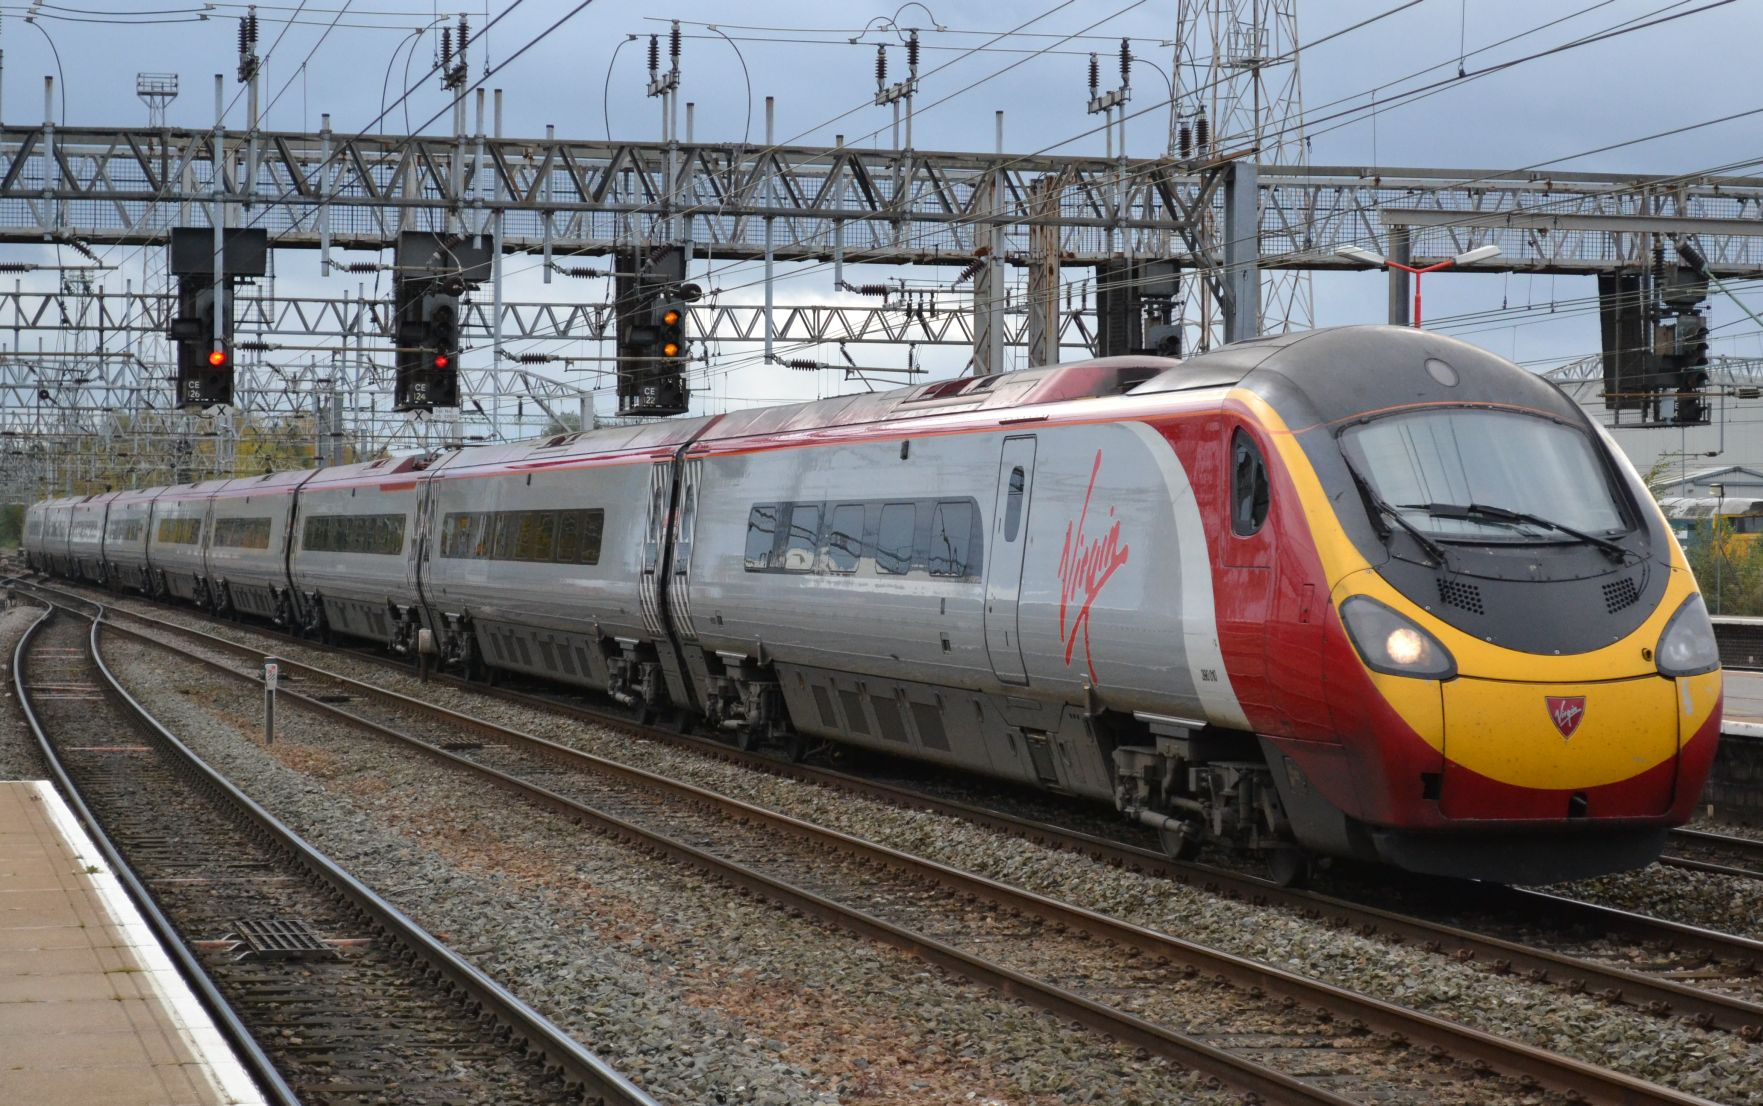 https://i1.wp.com/antidepaware.co.uk/wp-content/uploads/2014/01/Pendolino1.jpg